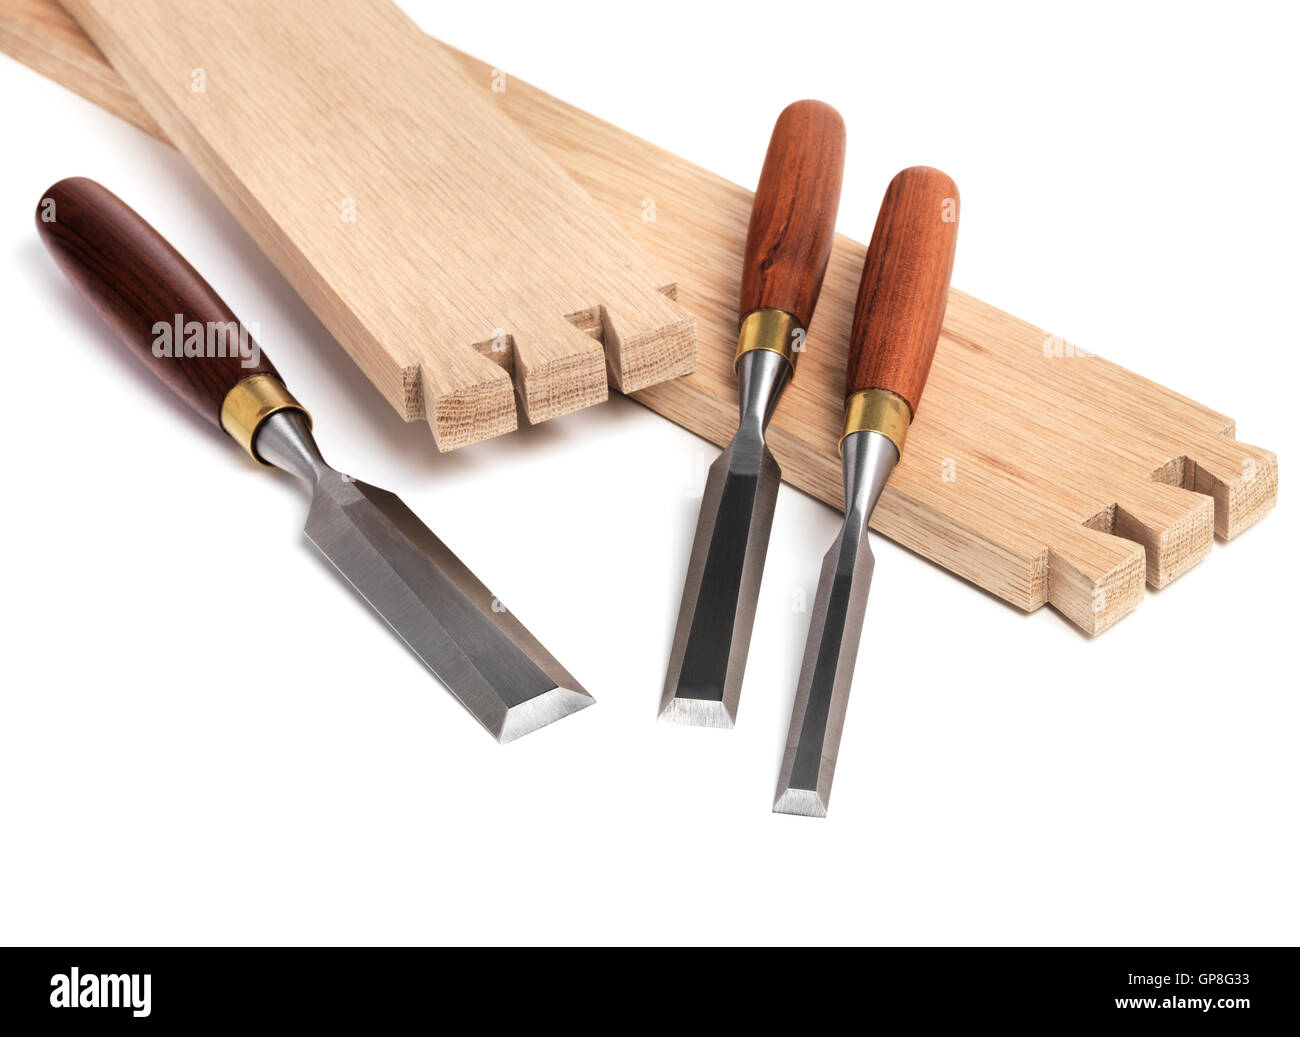 Wood Chisel set and wood joint - Stock Image